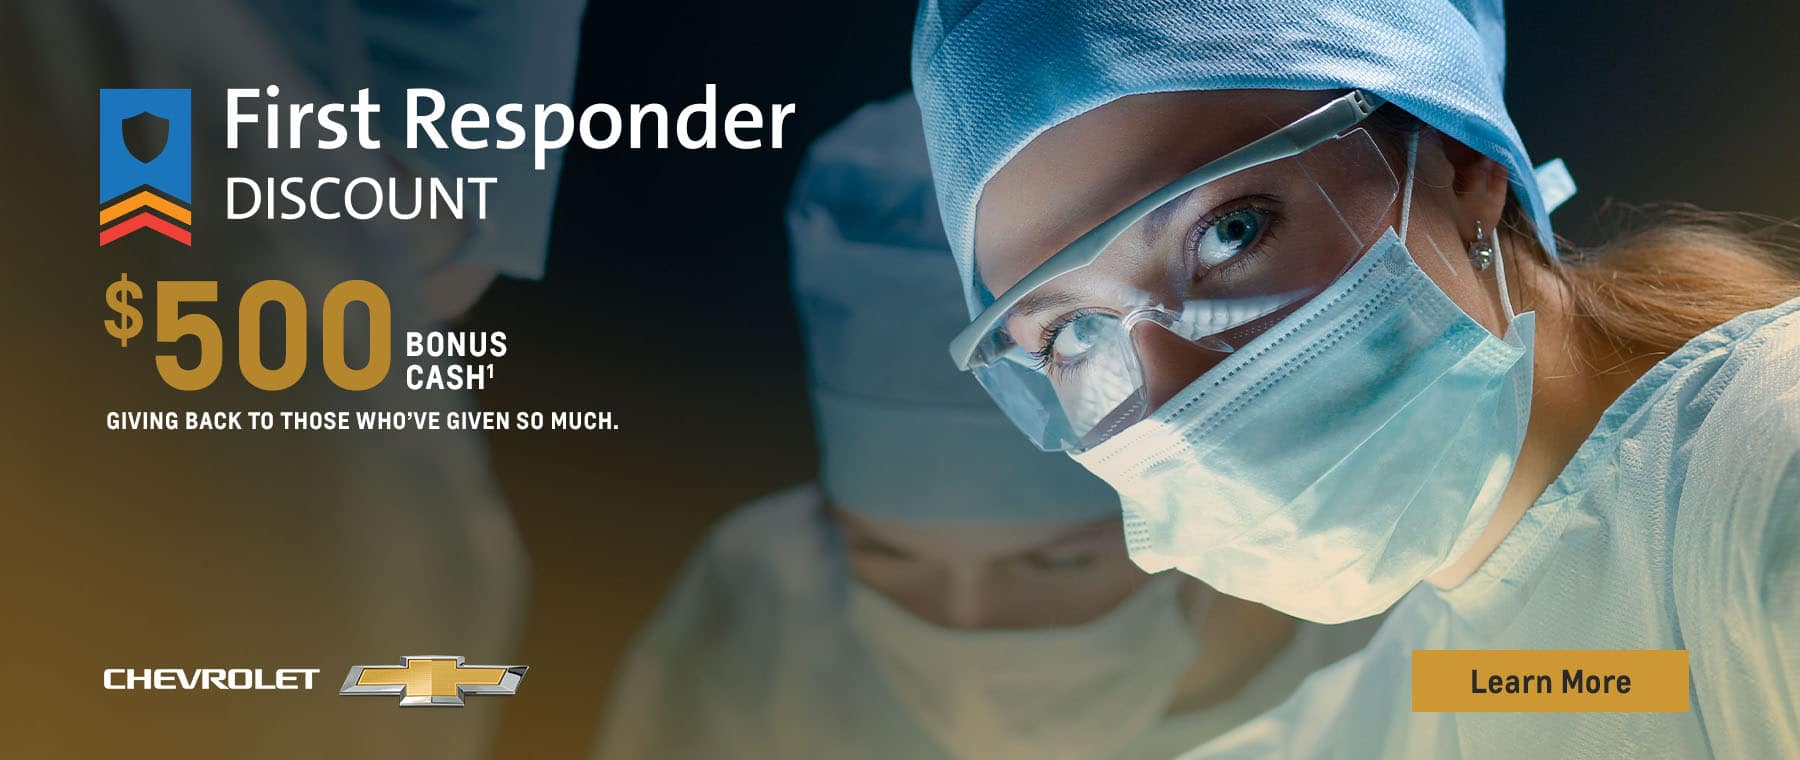 29_MAY_FIRST RESPONDERS DISCOUNT_1800x760